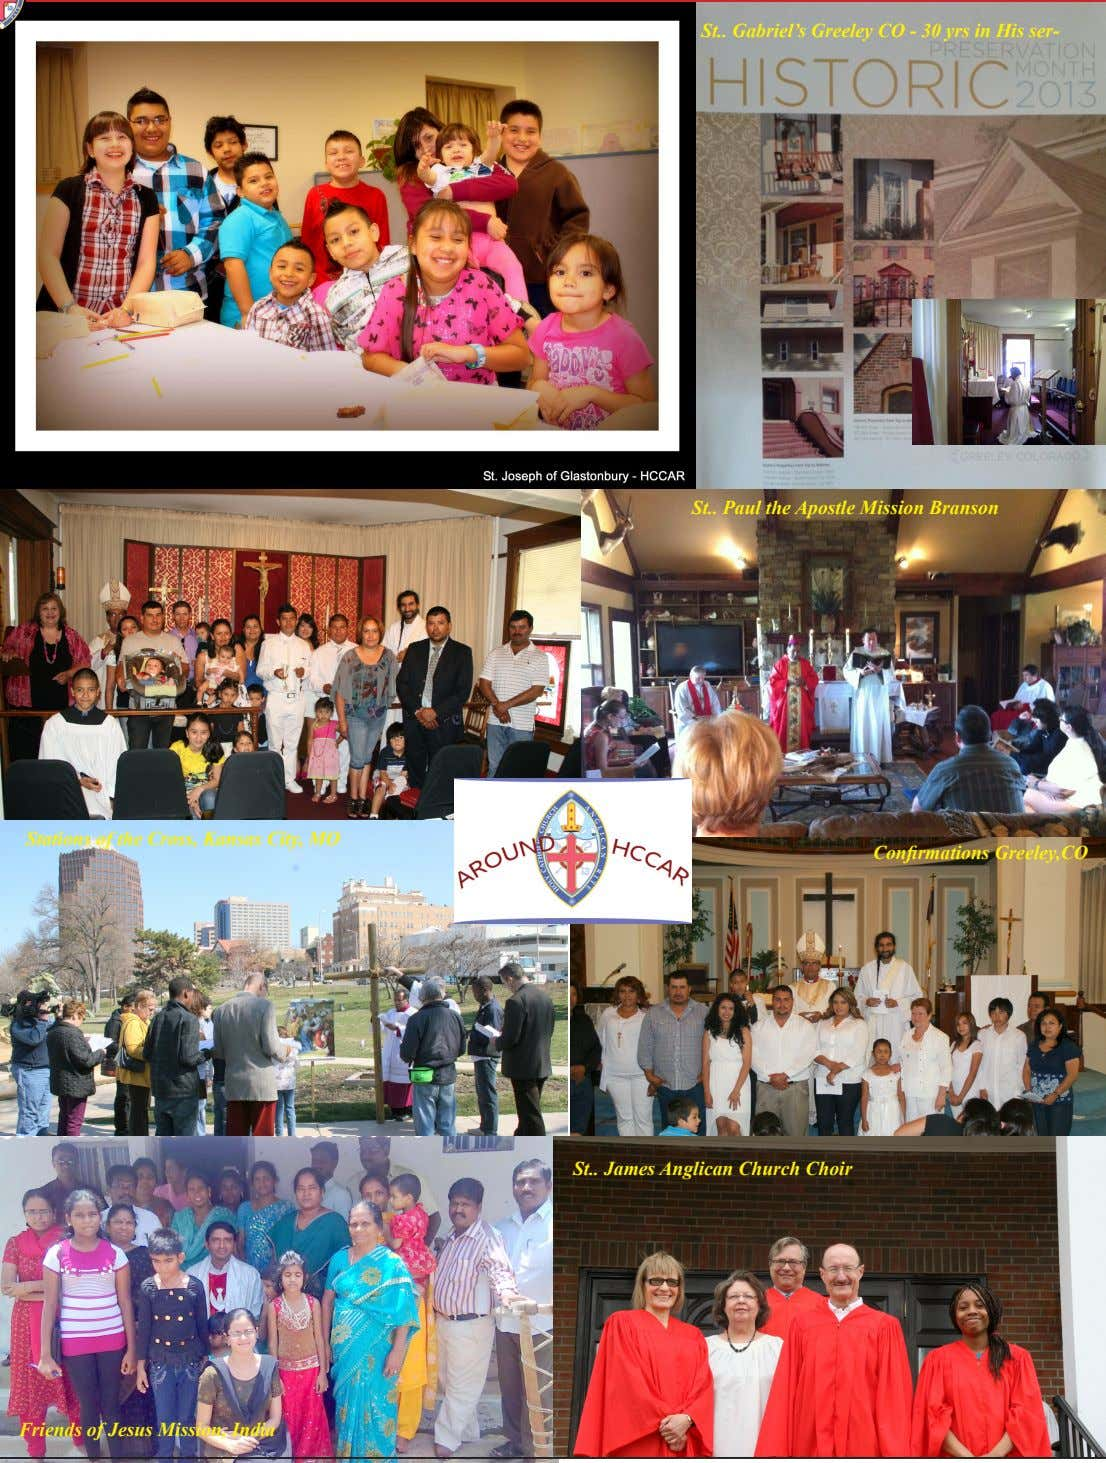 St Gabriel's Greeley CO - 30 yrs in His ser- St Paul the Apostle Mission